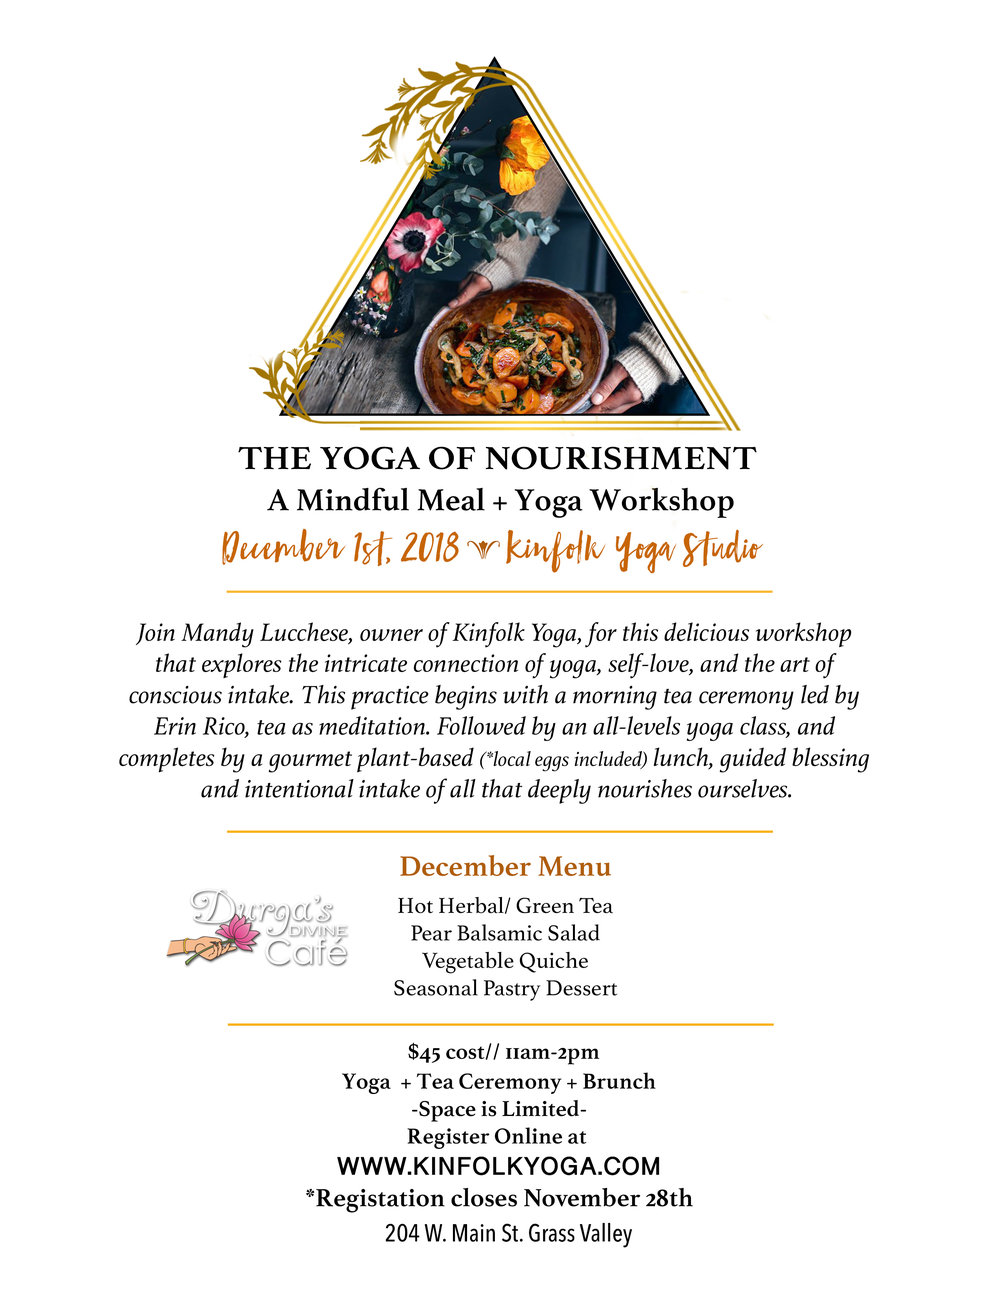 Yoga Nourishment Healthy Vegetarian Durgas Cafe Grass Valley Nevada City Kinfolk Yoga.jpg